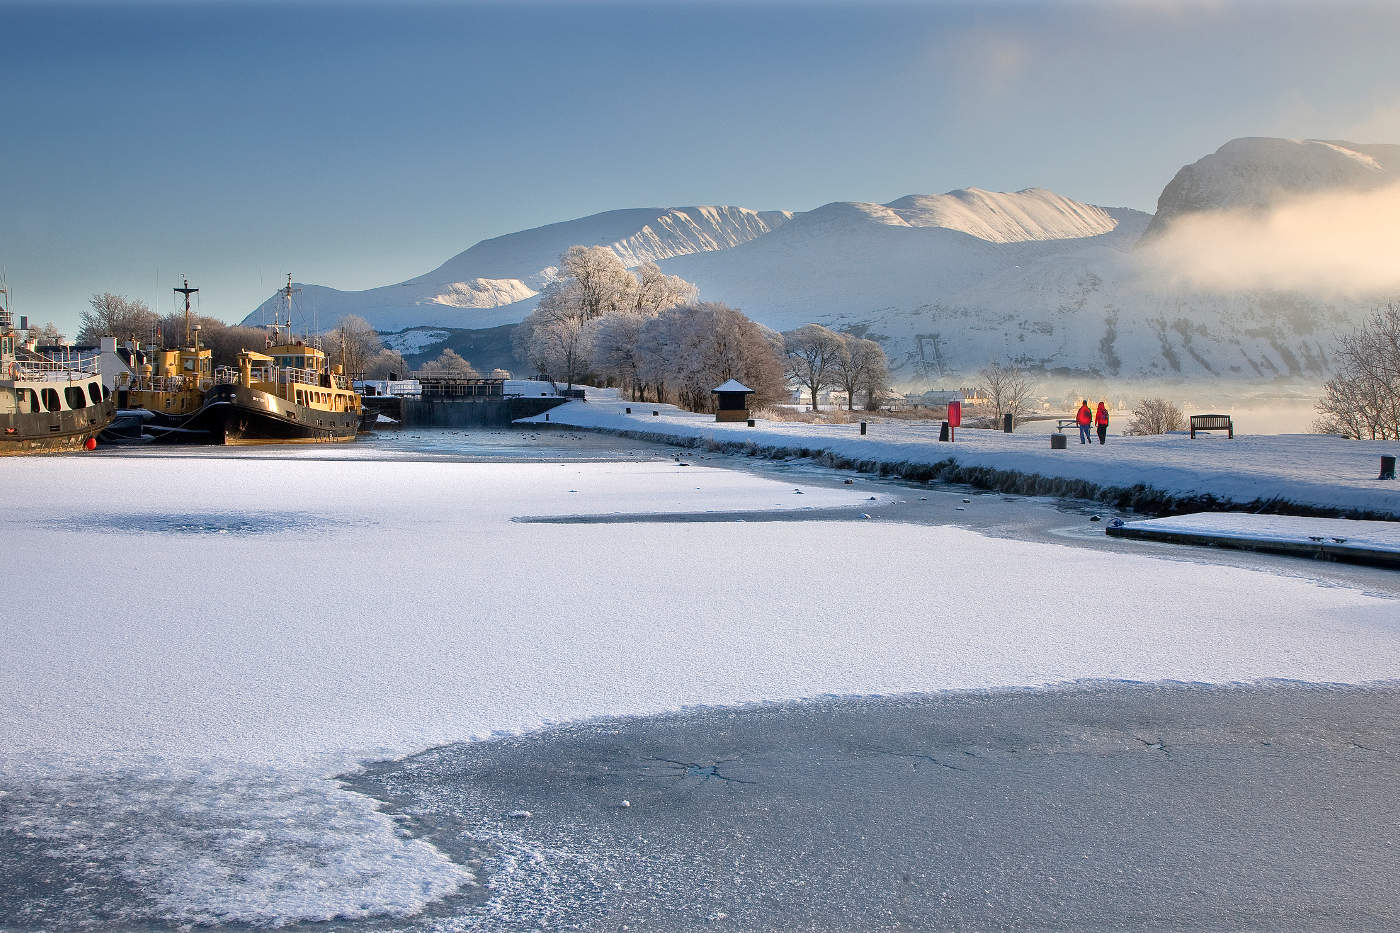 Panoramic winter scene at corpach with the ben nevis